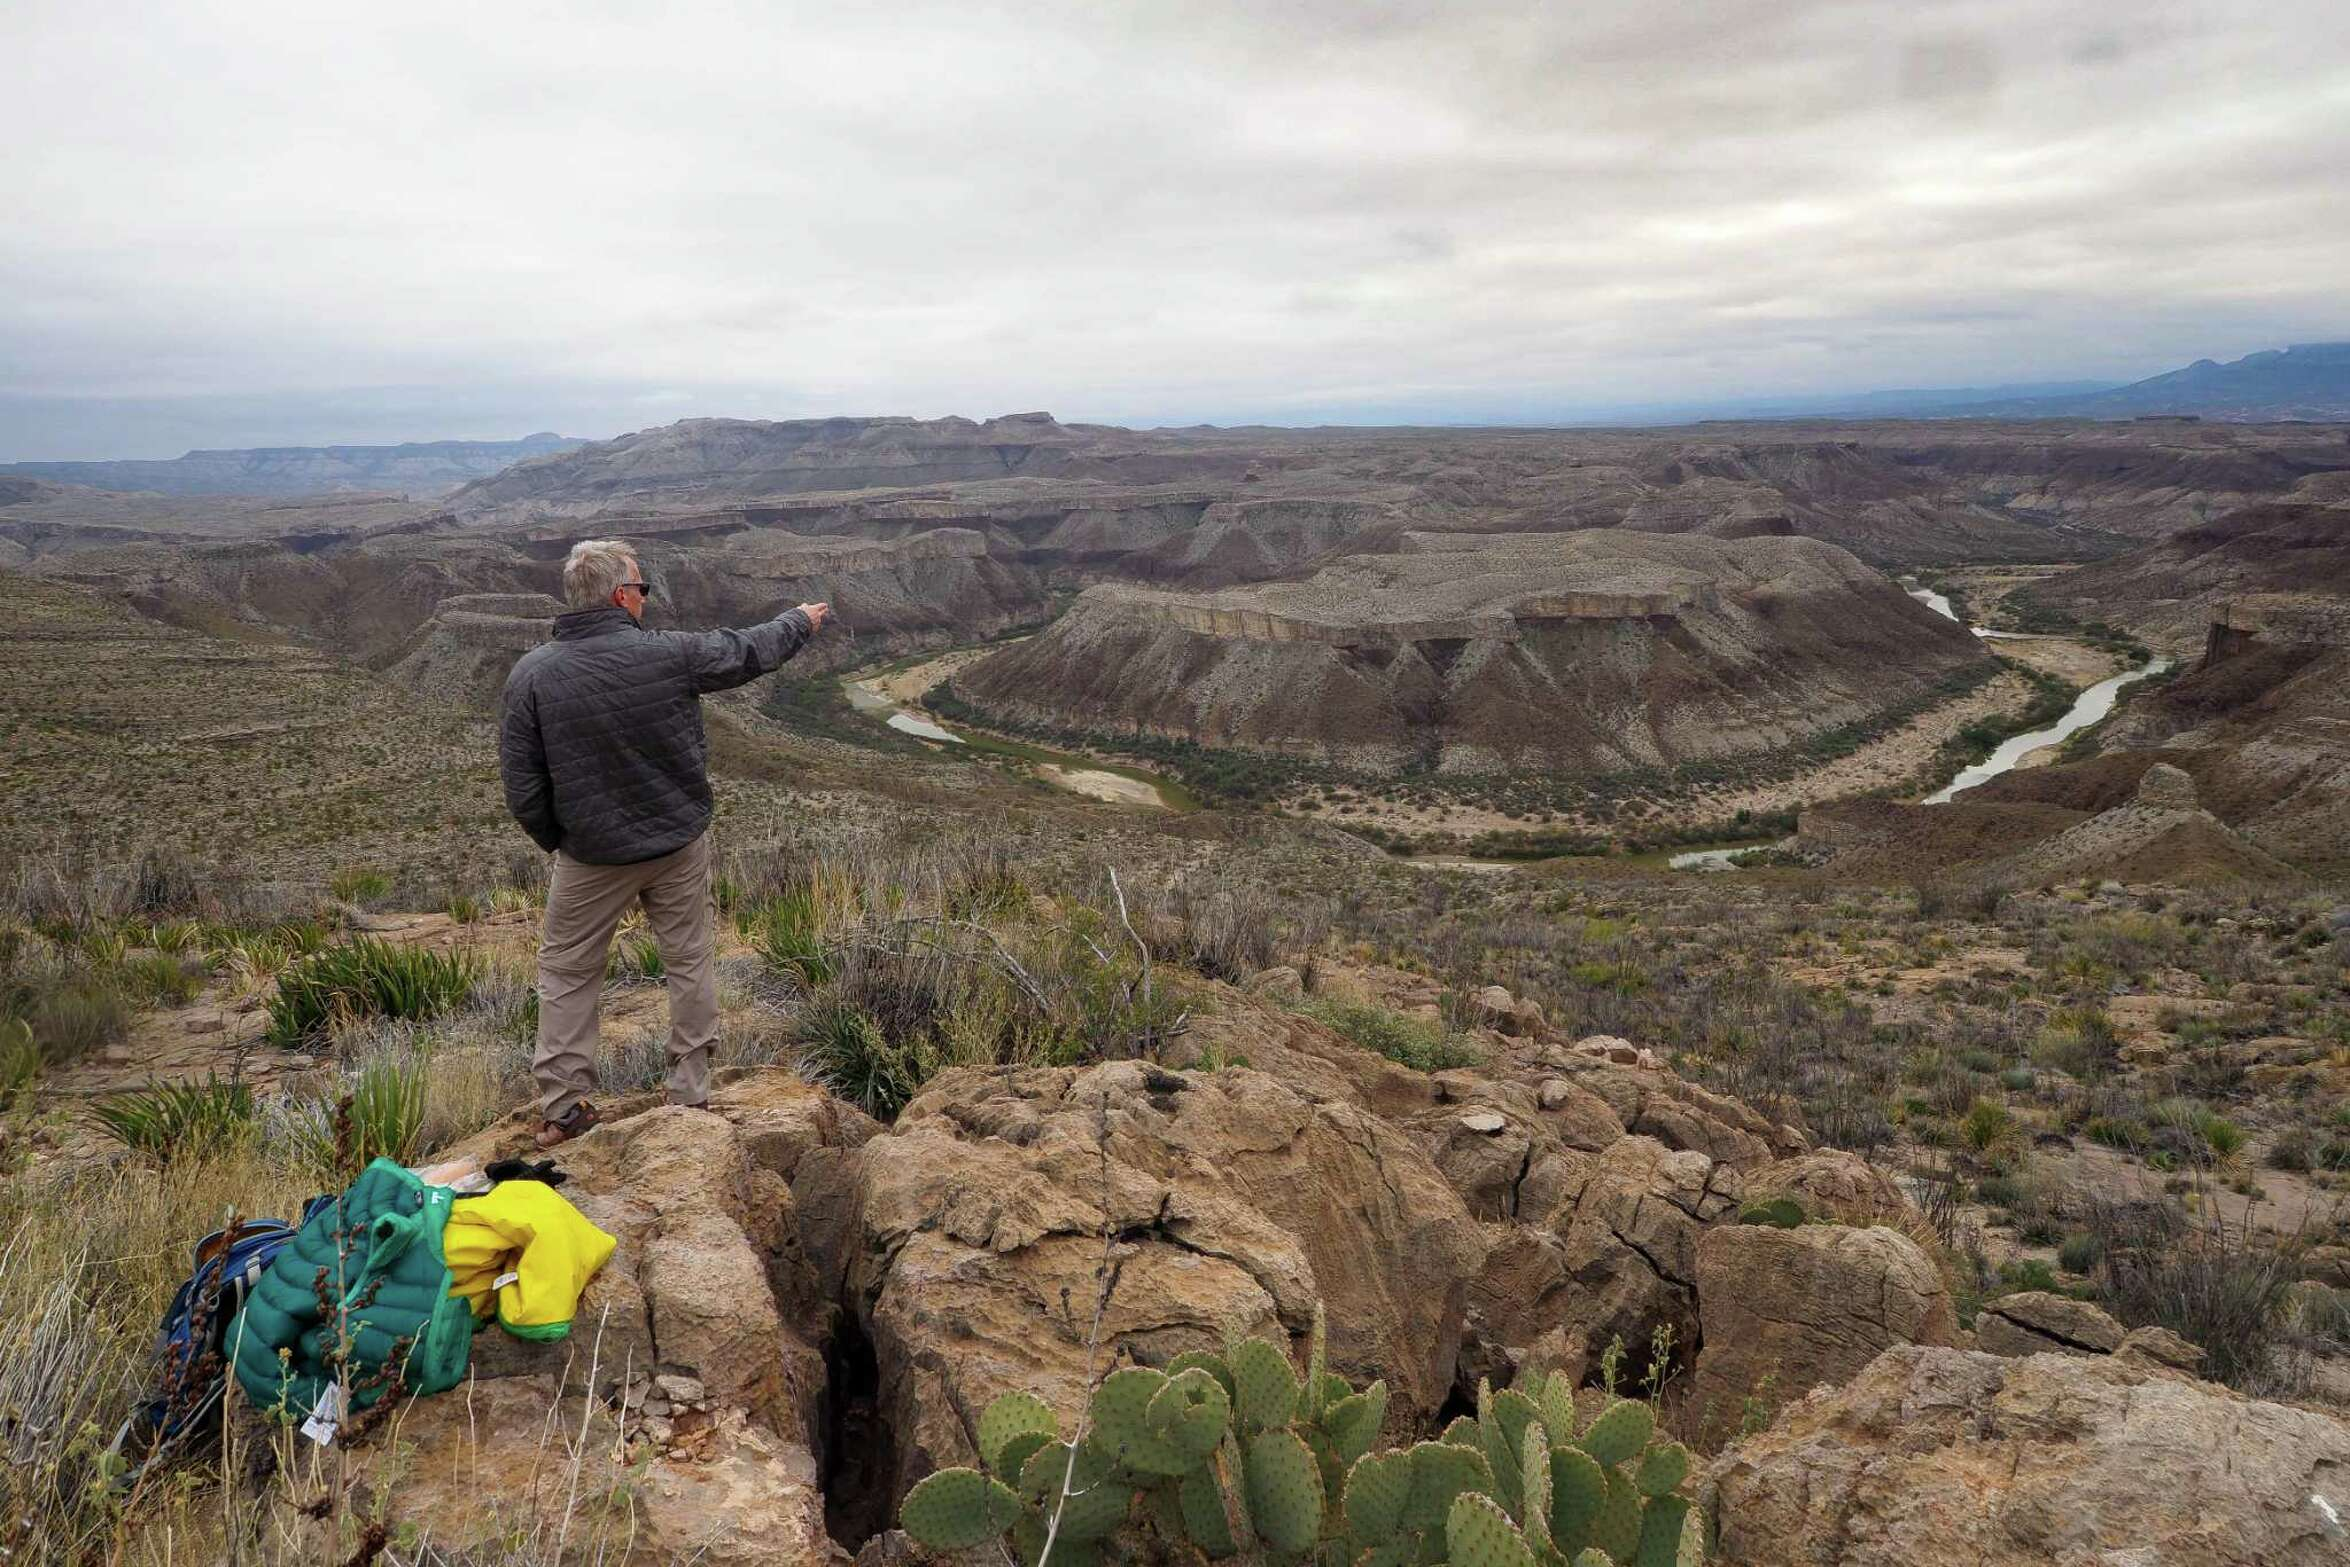 After a two-month shutdown, Big Bend National Park will reopen beginning Monday for day-use activities including hiking and bicycling. Shown is the view from the park's South Rim.